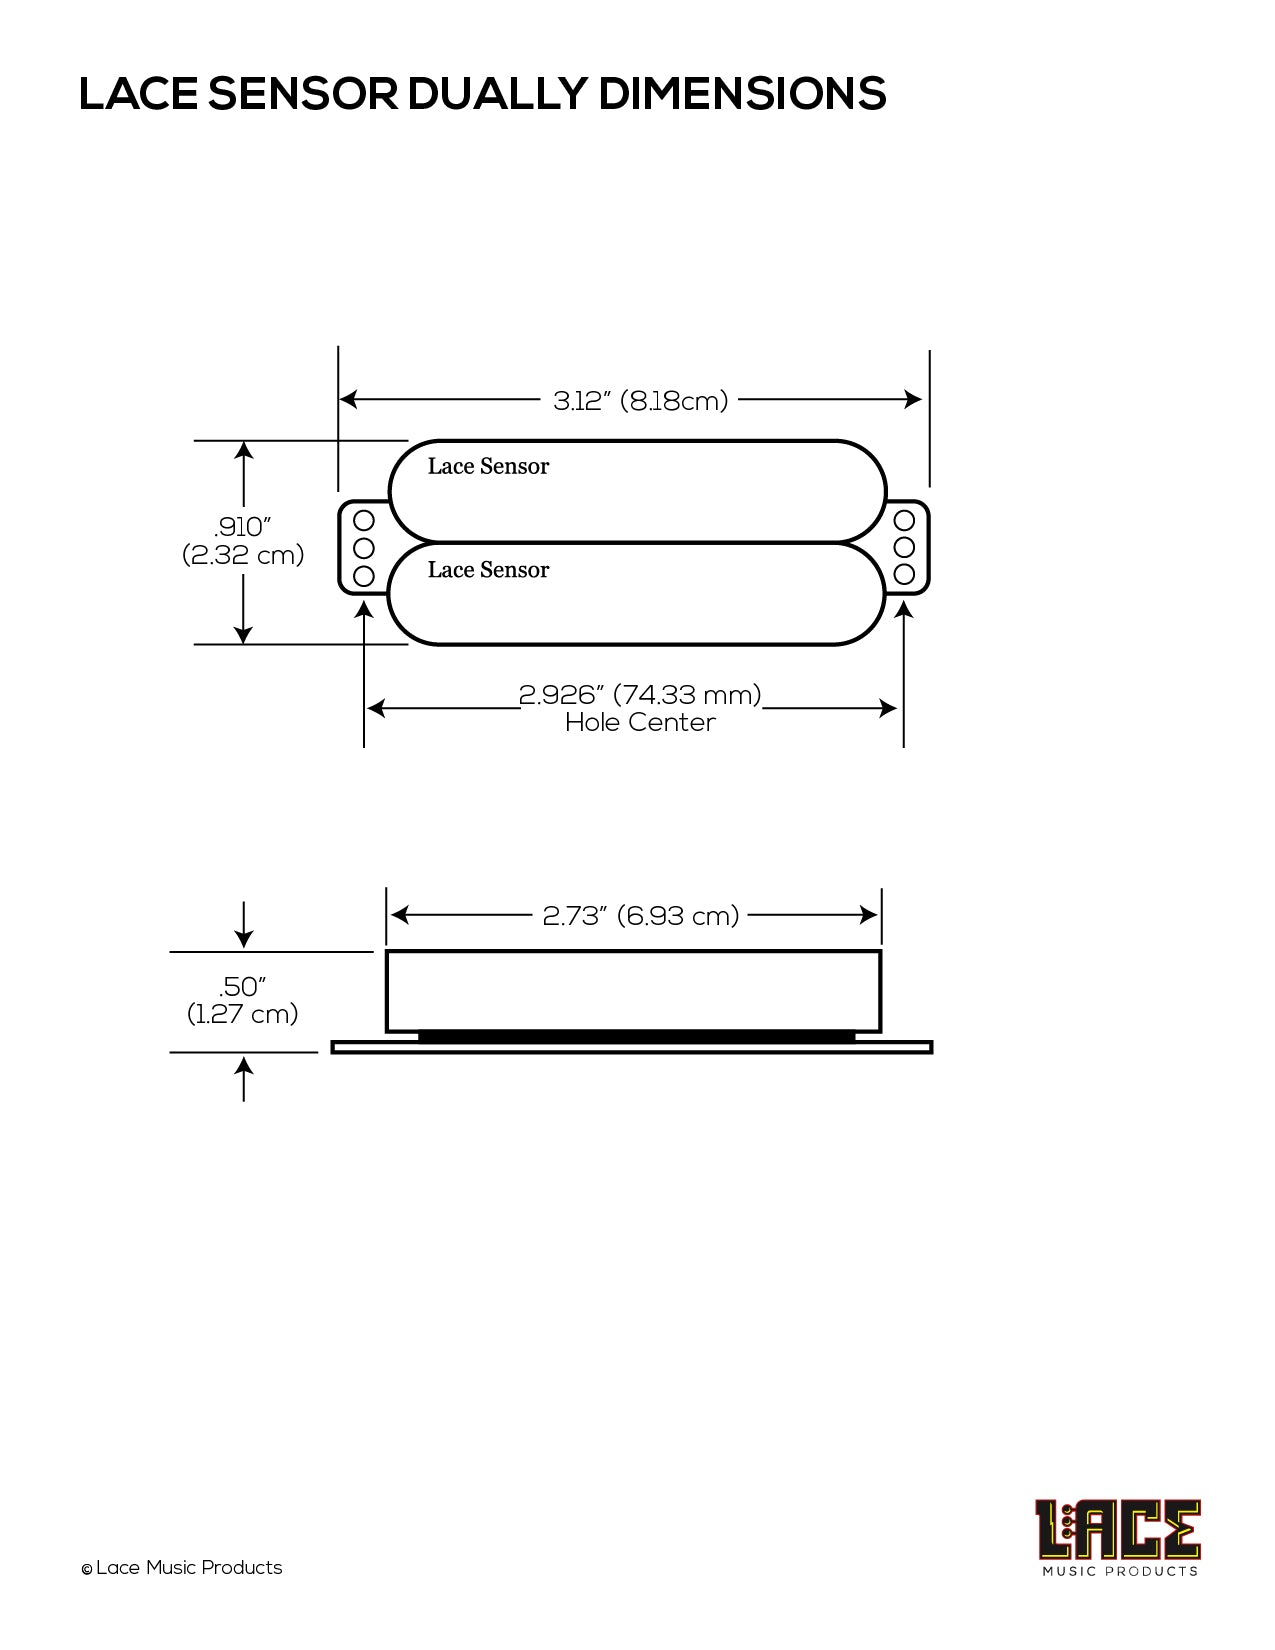 [XOTG_4463]  Lace Sensor Dually Red-Blue Humbucker – Lace Music Products   Lace Sensor Dually Wiring Diagram      Lace Music Products